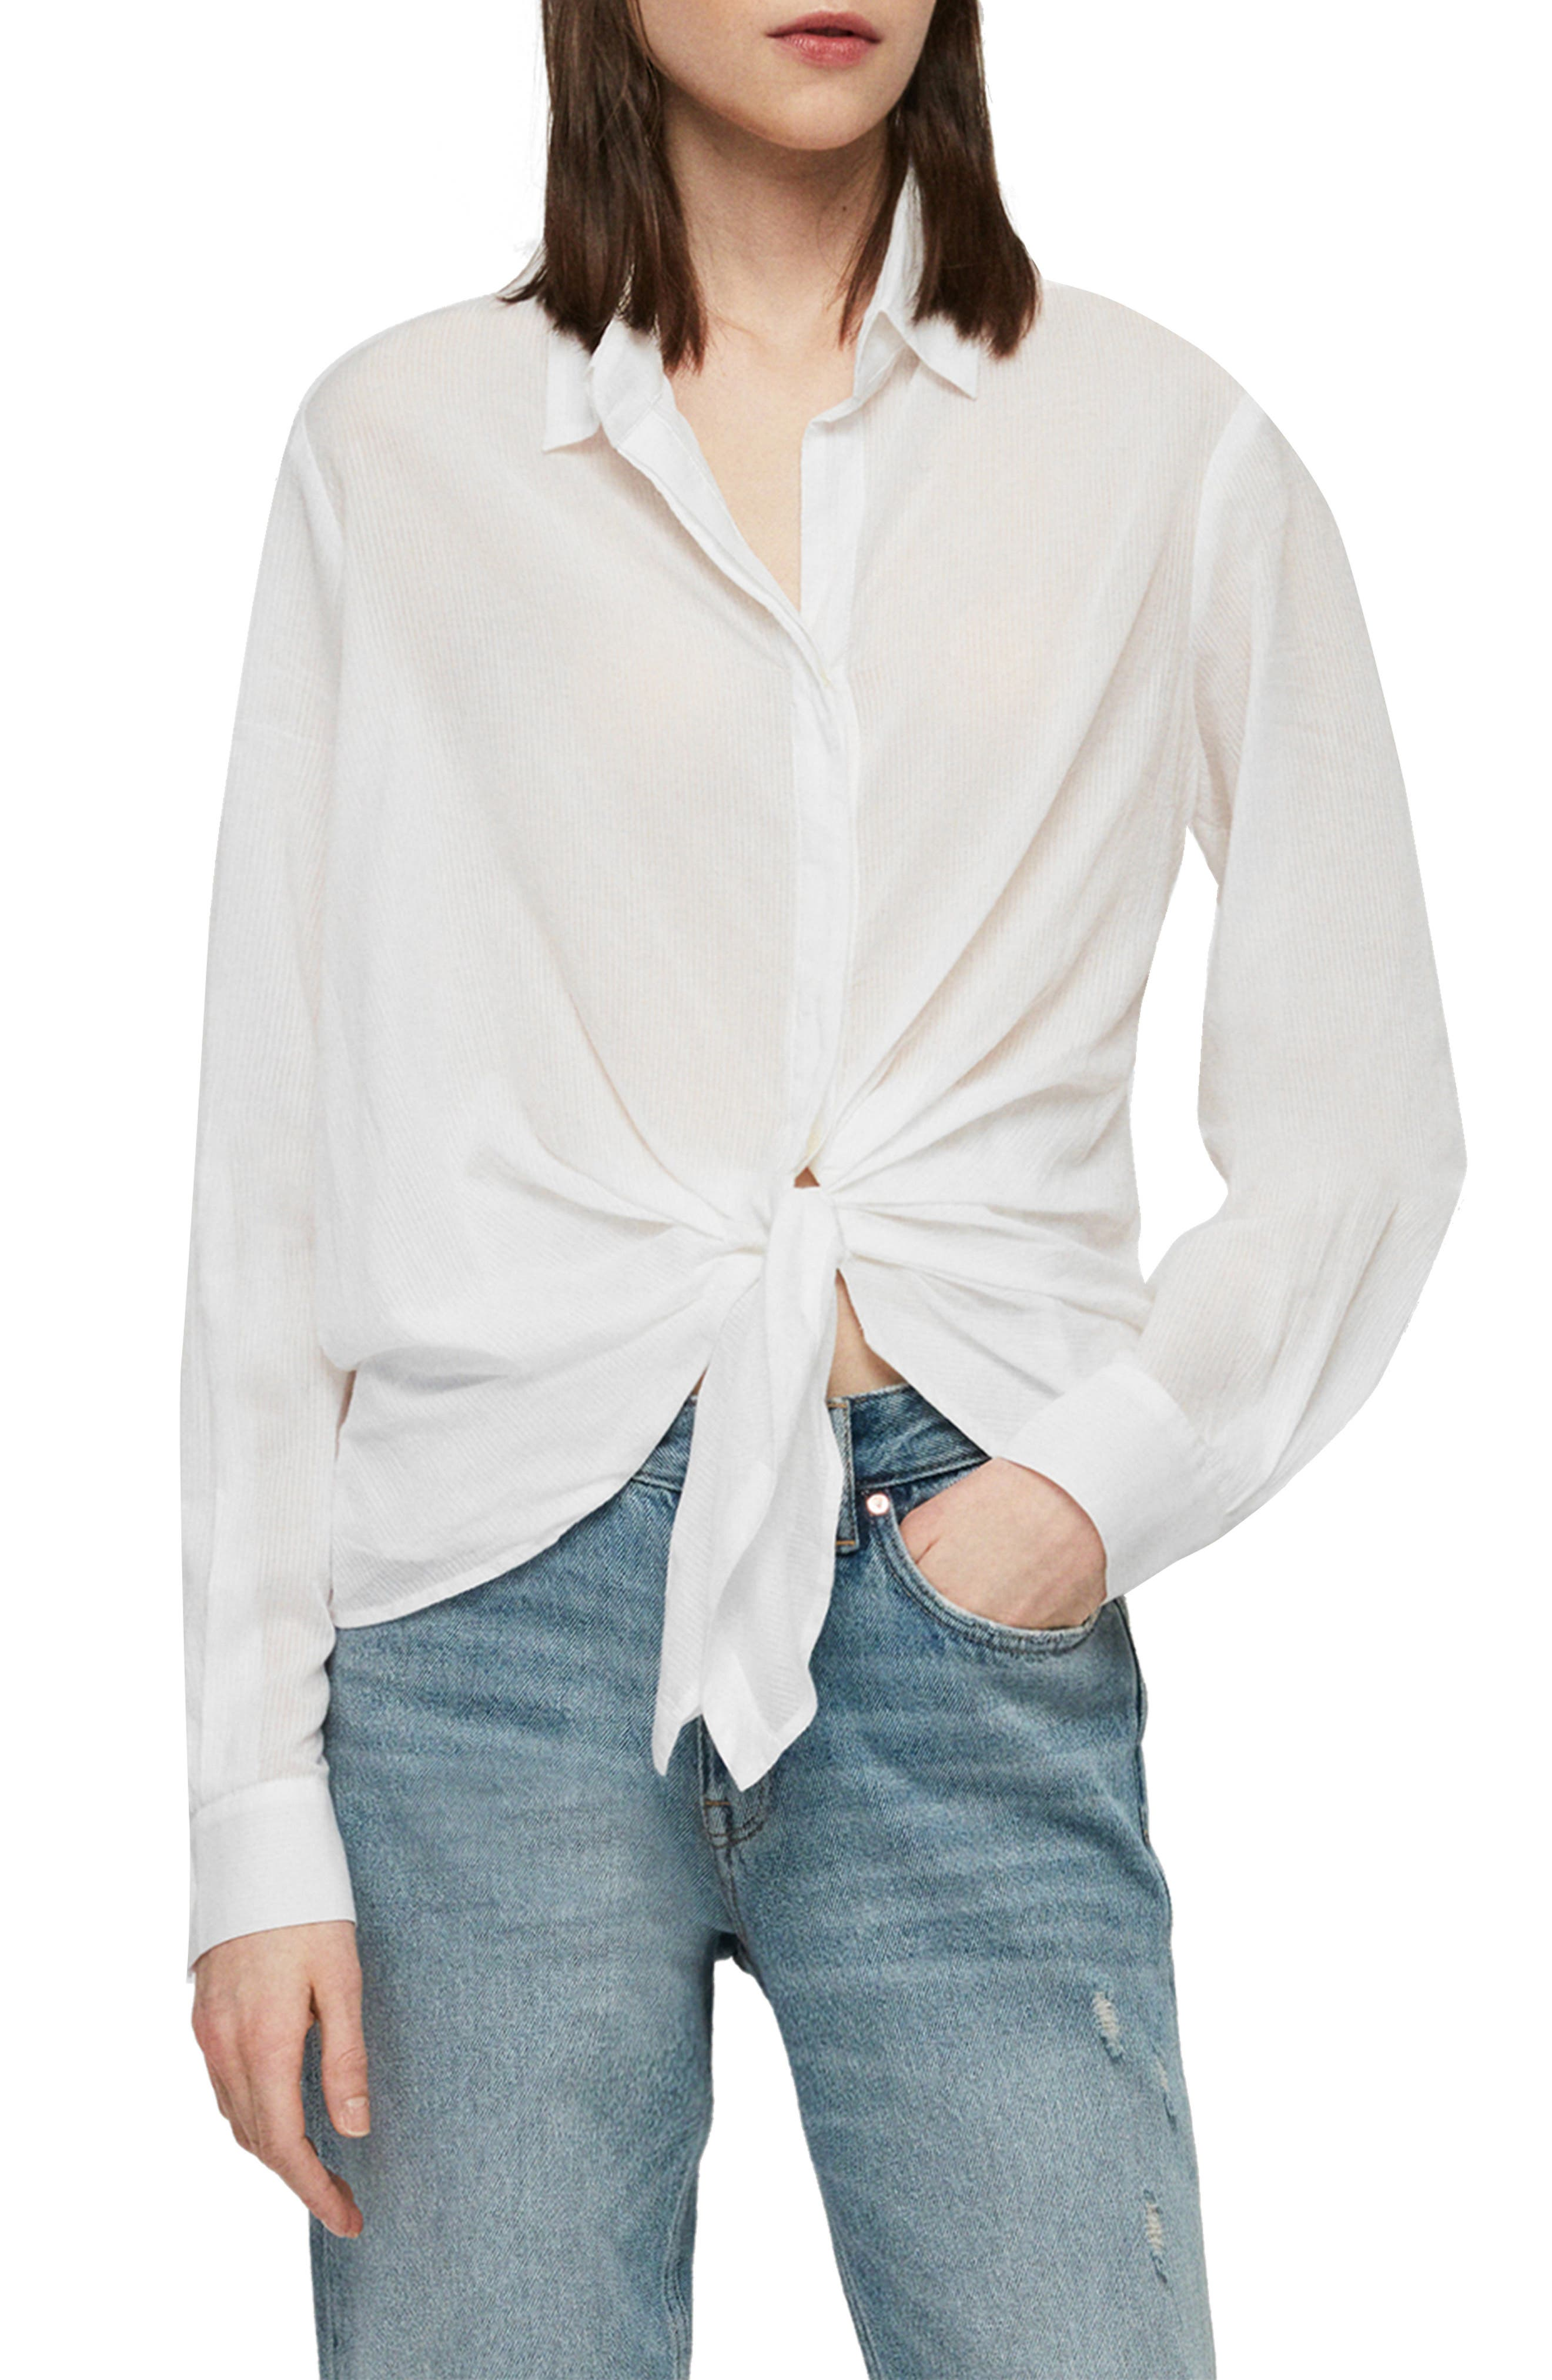 ALLSAINTS, Sirena Front Tie Shirt, Main thumbnail 1, color, CHALK WHITE